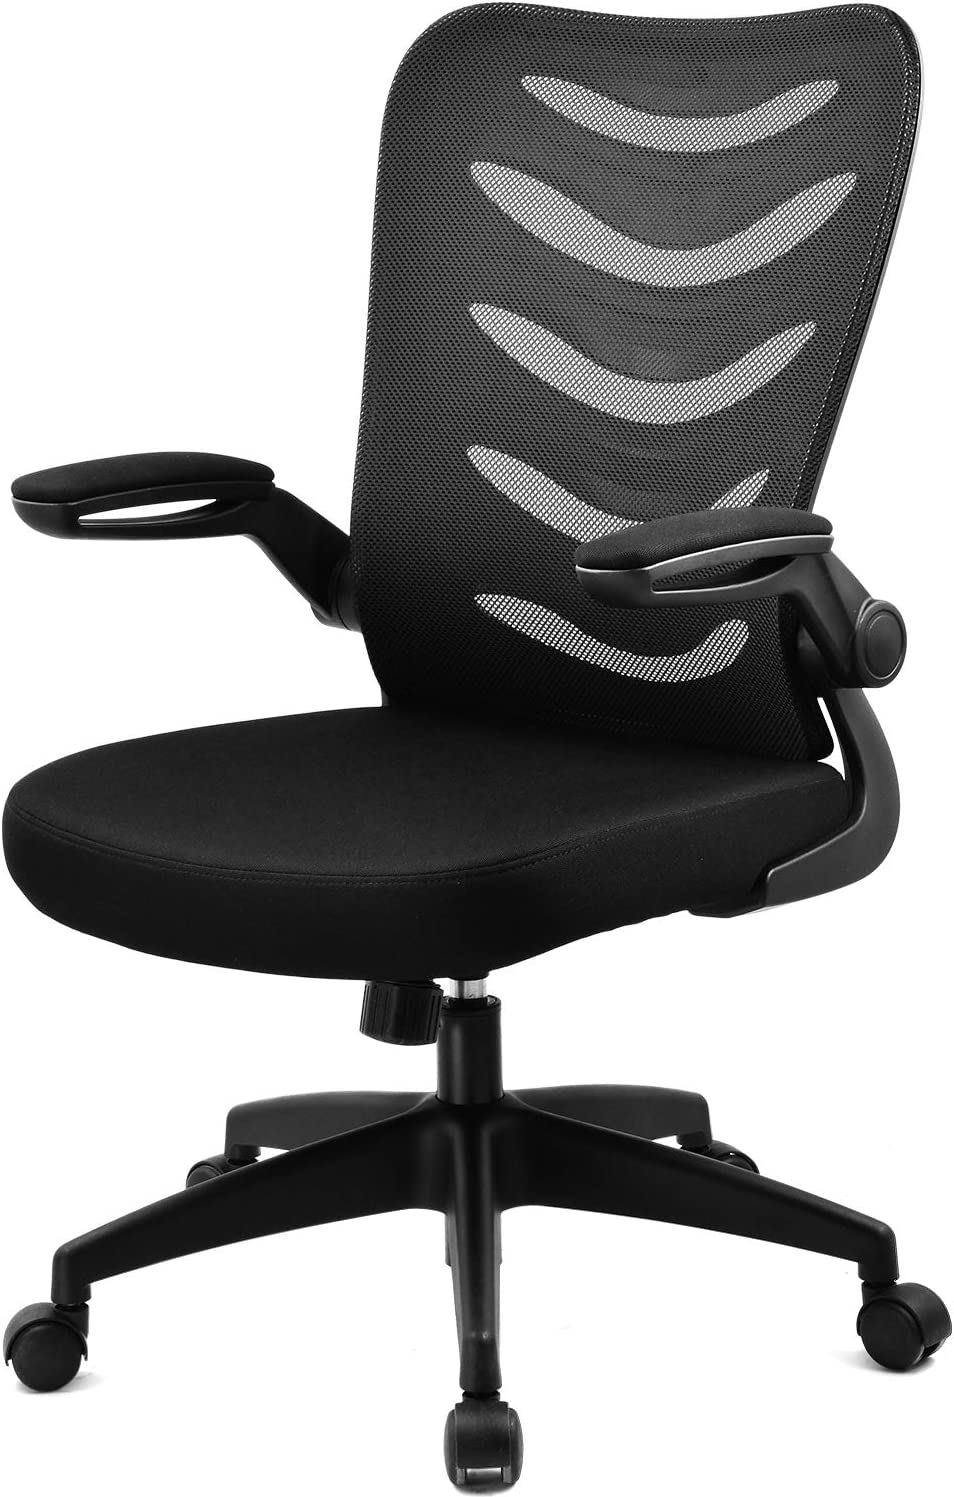 ComHoma Office Chair Mesh Desk Ergonomic Computer Chair with Flip Up Arms Lumbar Support Adjustable Swivel Mid Back for Conference Home Office, Black, BIFMA Certified